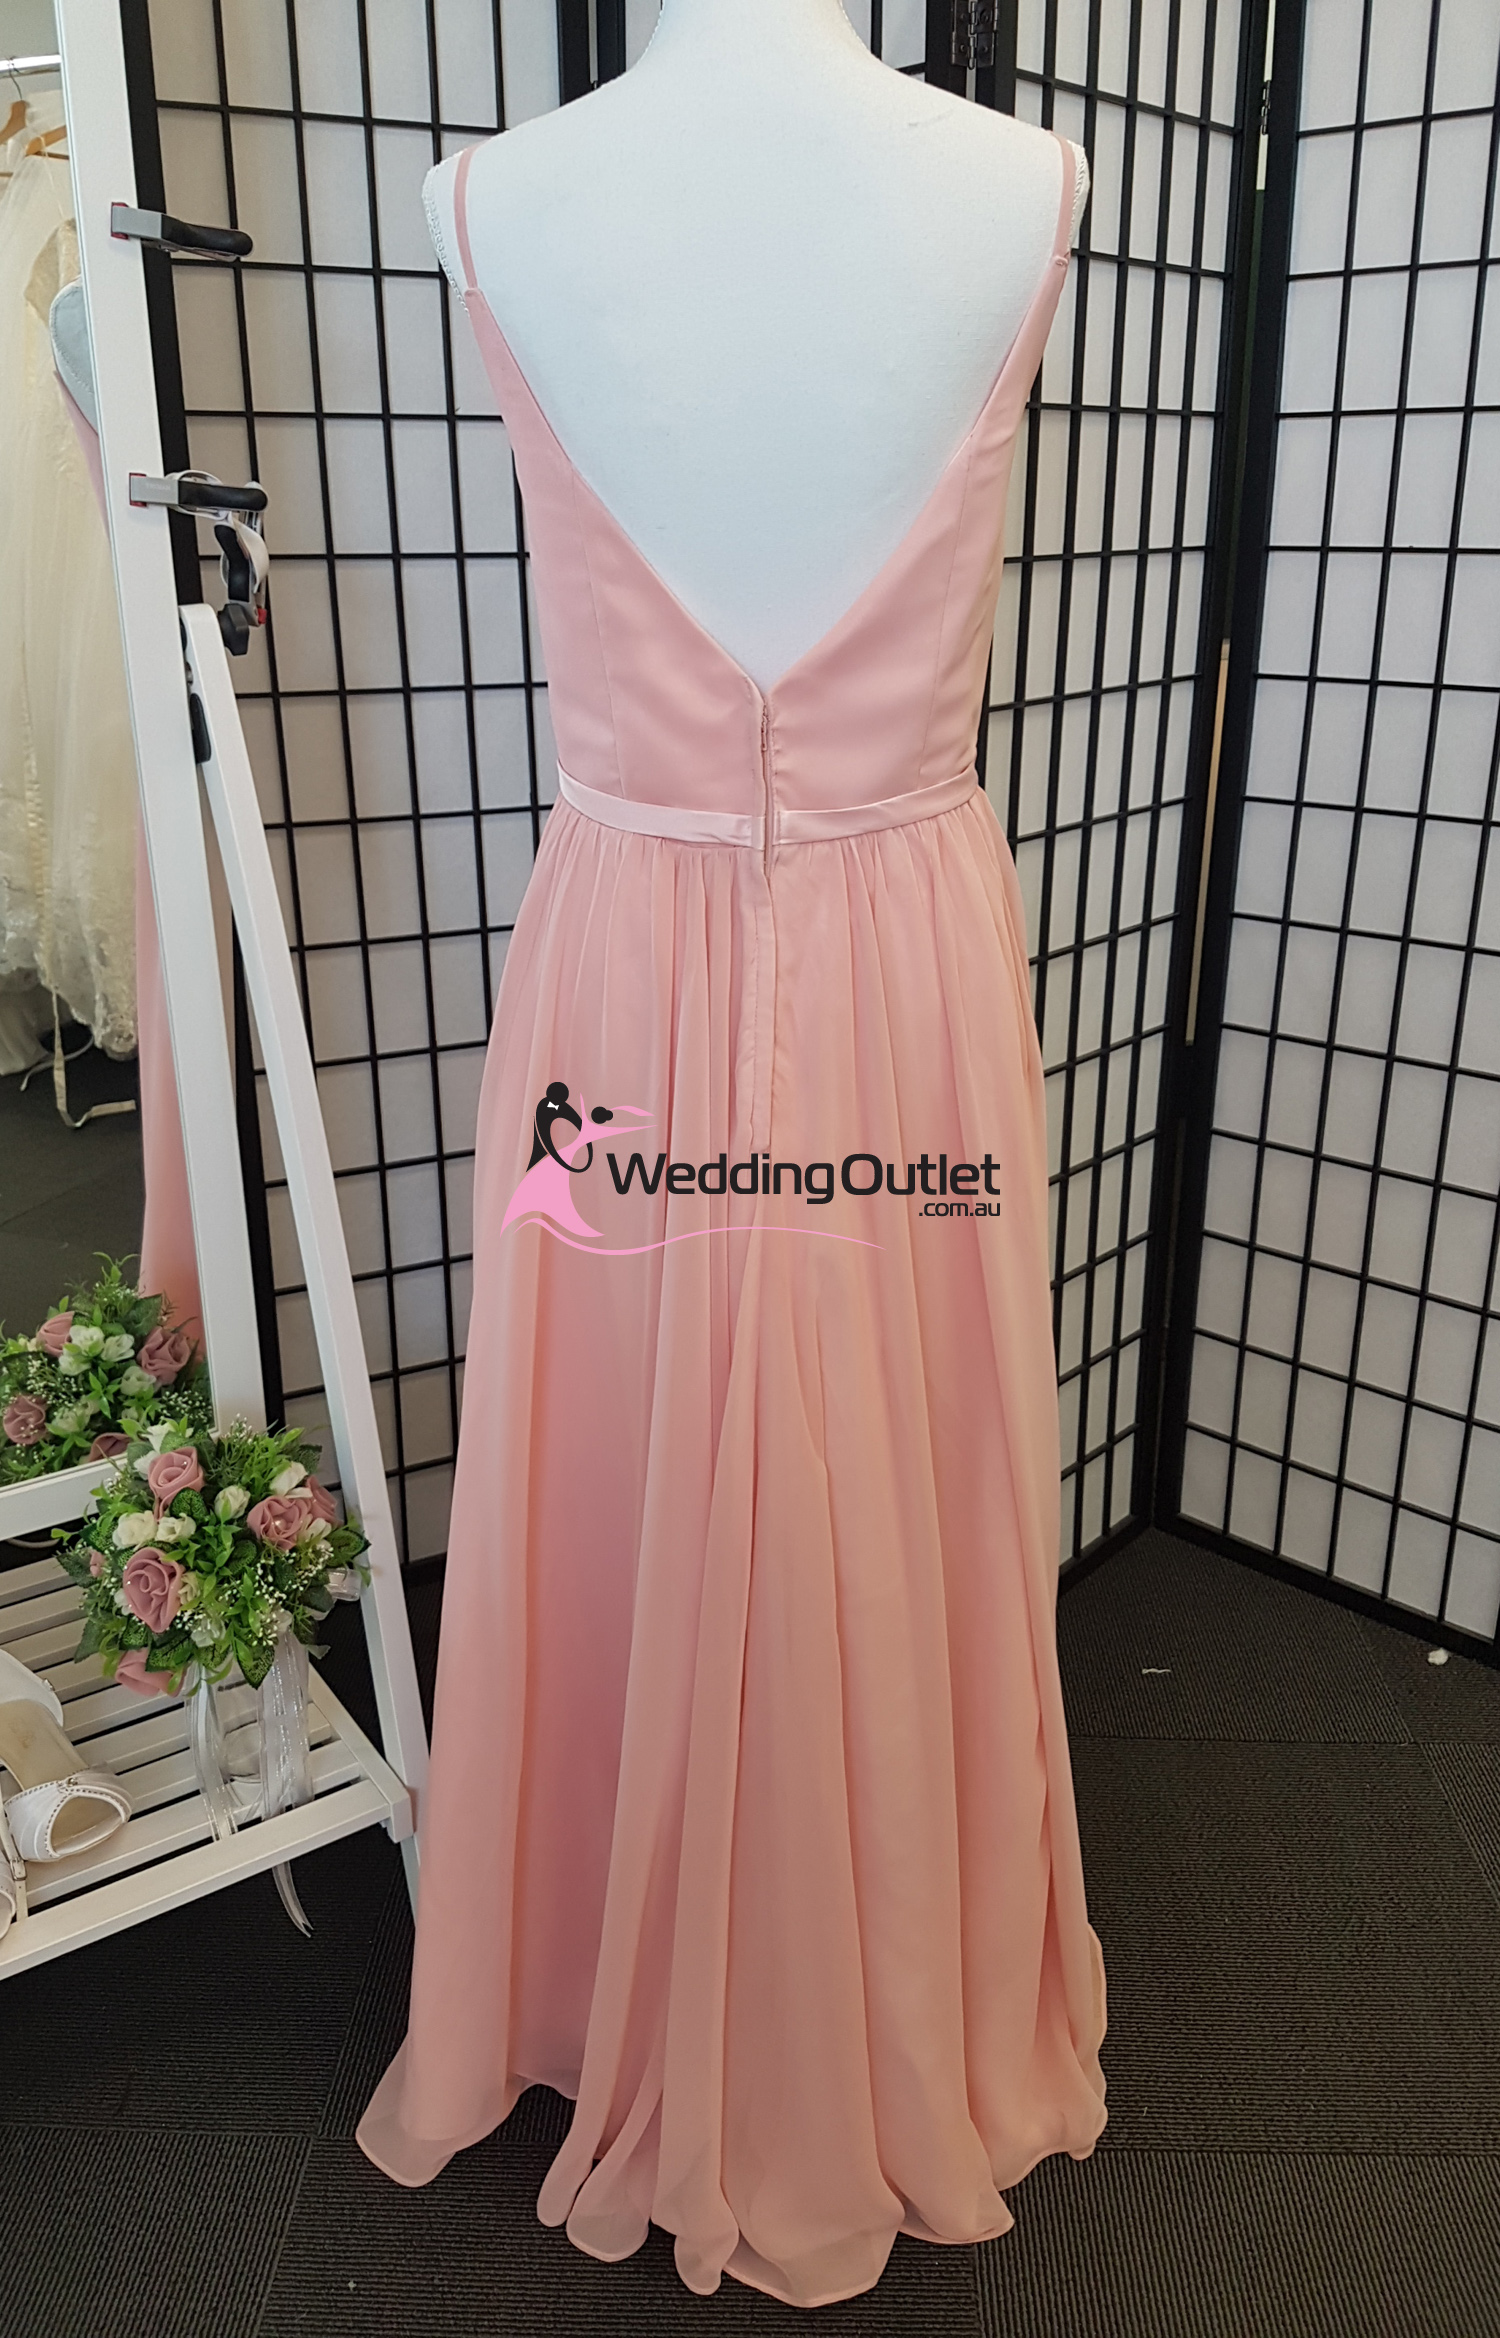 Rose Bridesmaid Dress V neck Style #RR101 - WeddingOutlet.com.au